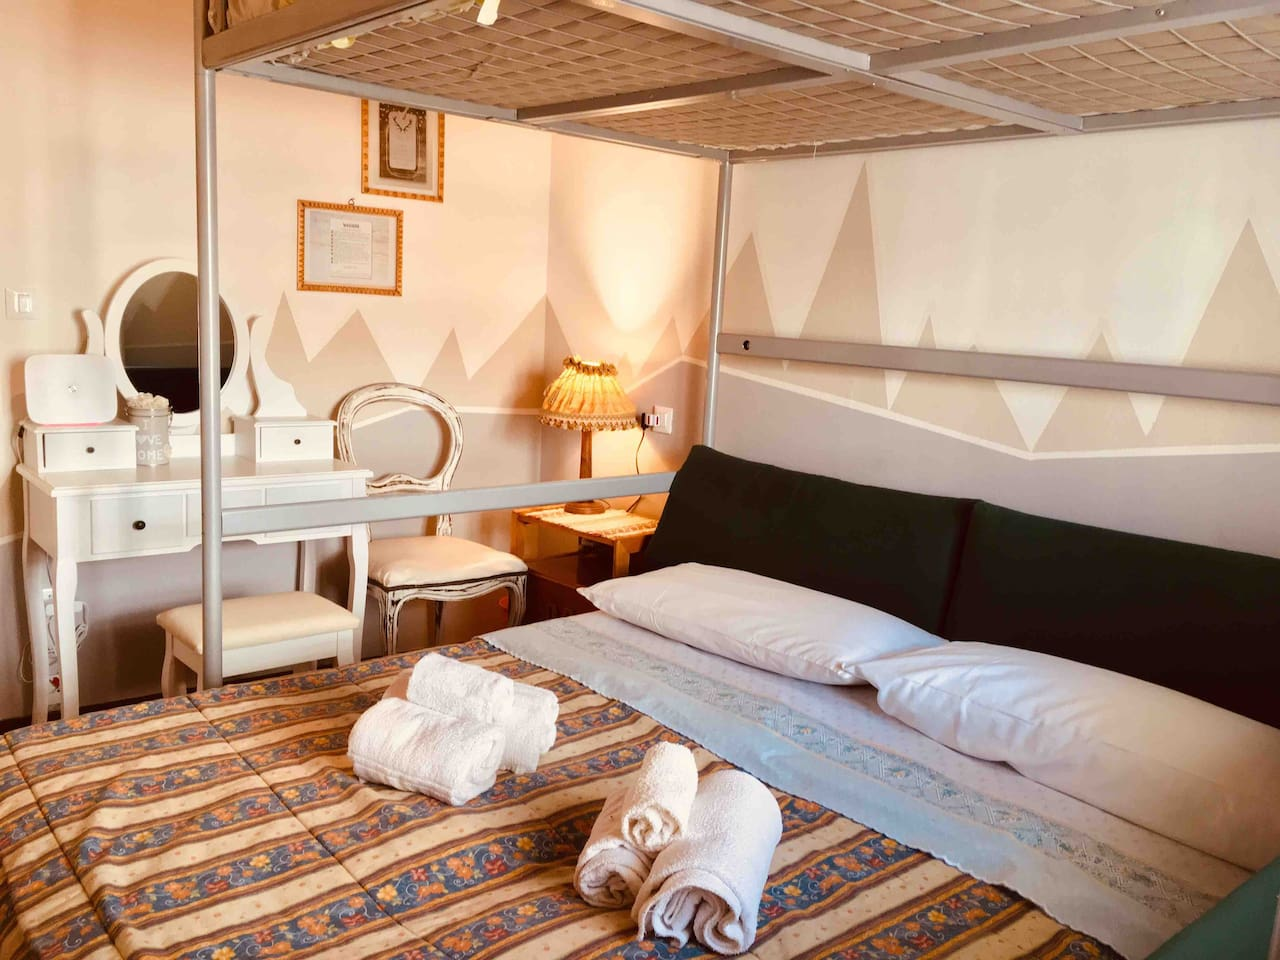 Double bedroom with an additional loft bed. The wi-fi is directly in the room, so the signal is excellent. We provide information on places to visit, trips and excursions as well as affiliated restaurants where you can sample excellent cuisine.